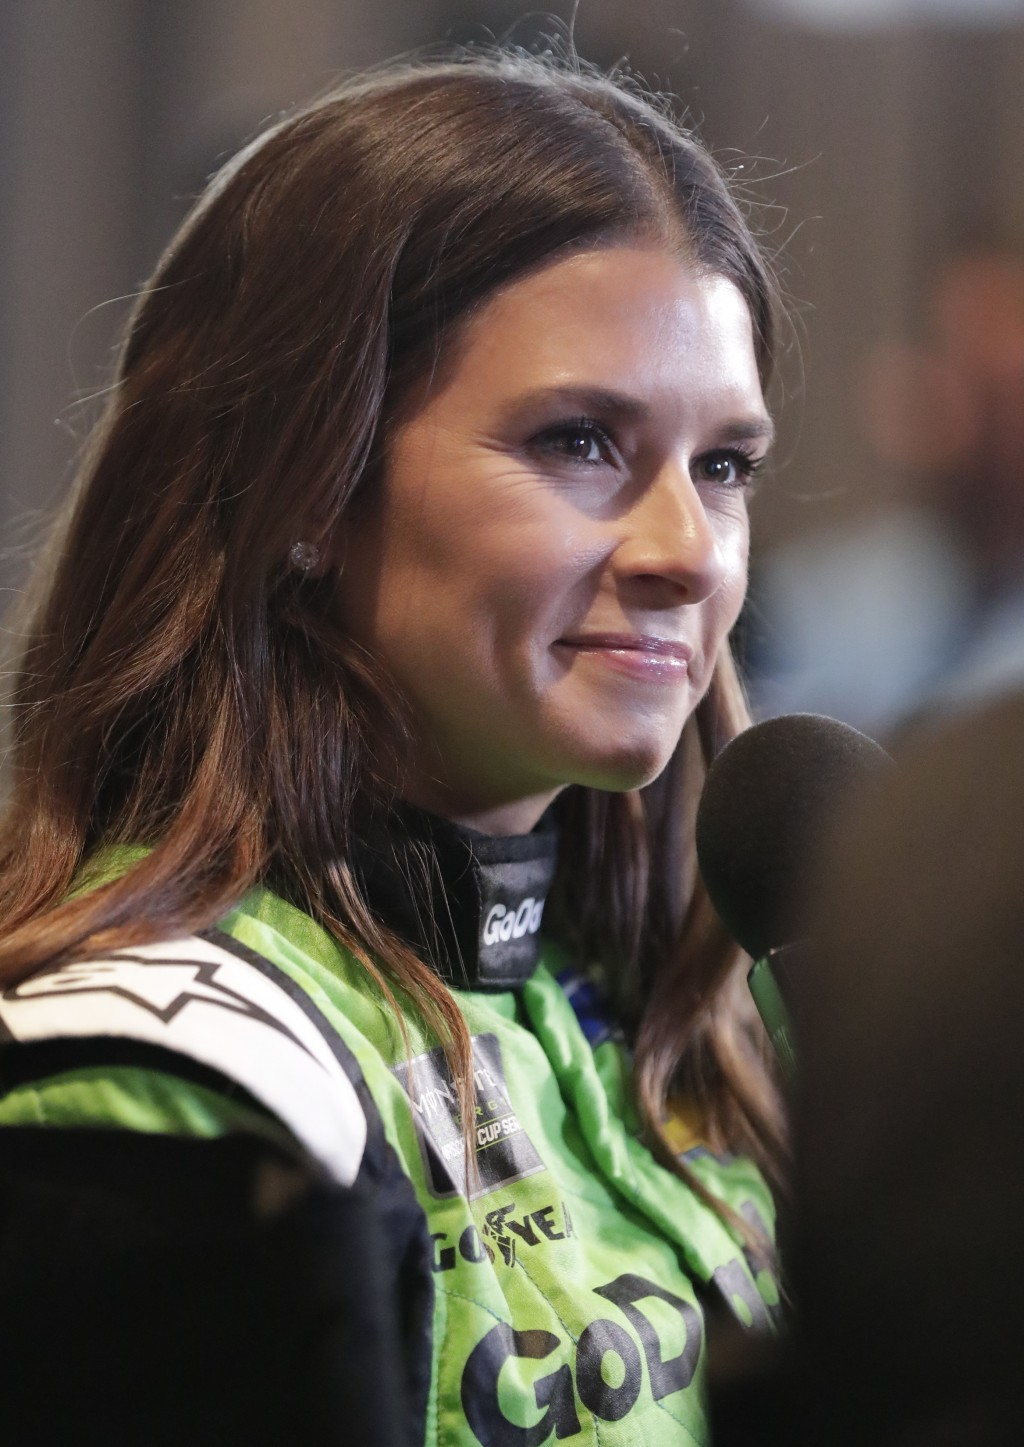 Danica Patrick takes part in an interview during media day for the NASCAR Daytona 500 auto race at Daytona International Speedway, Wednesday, Feb. 14,